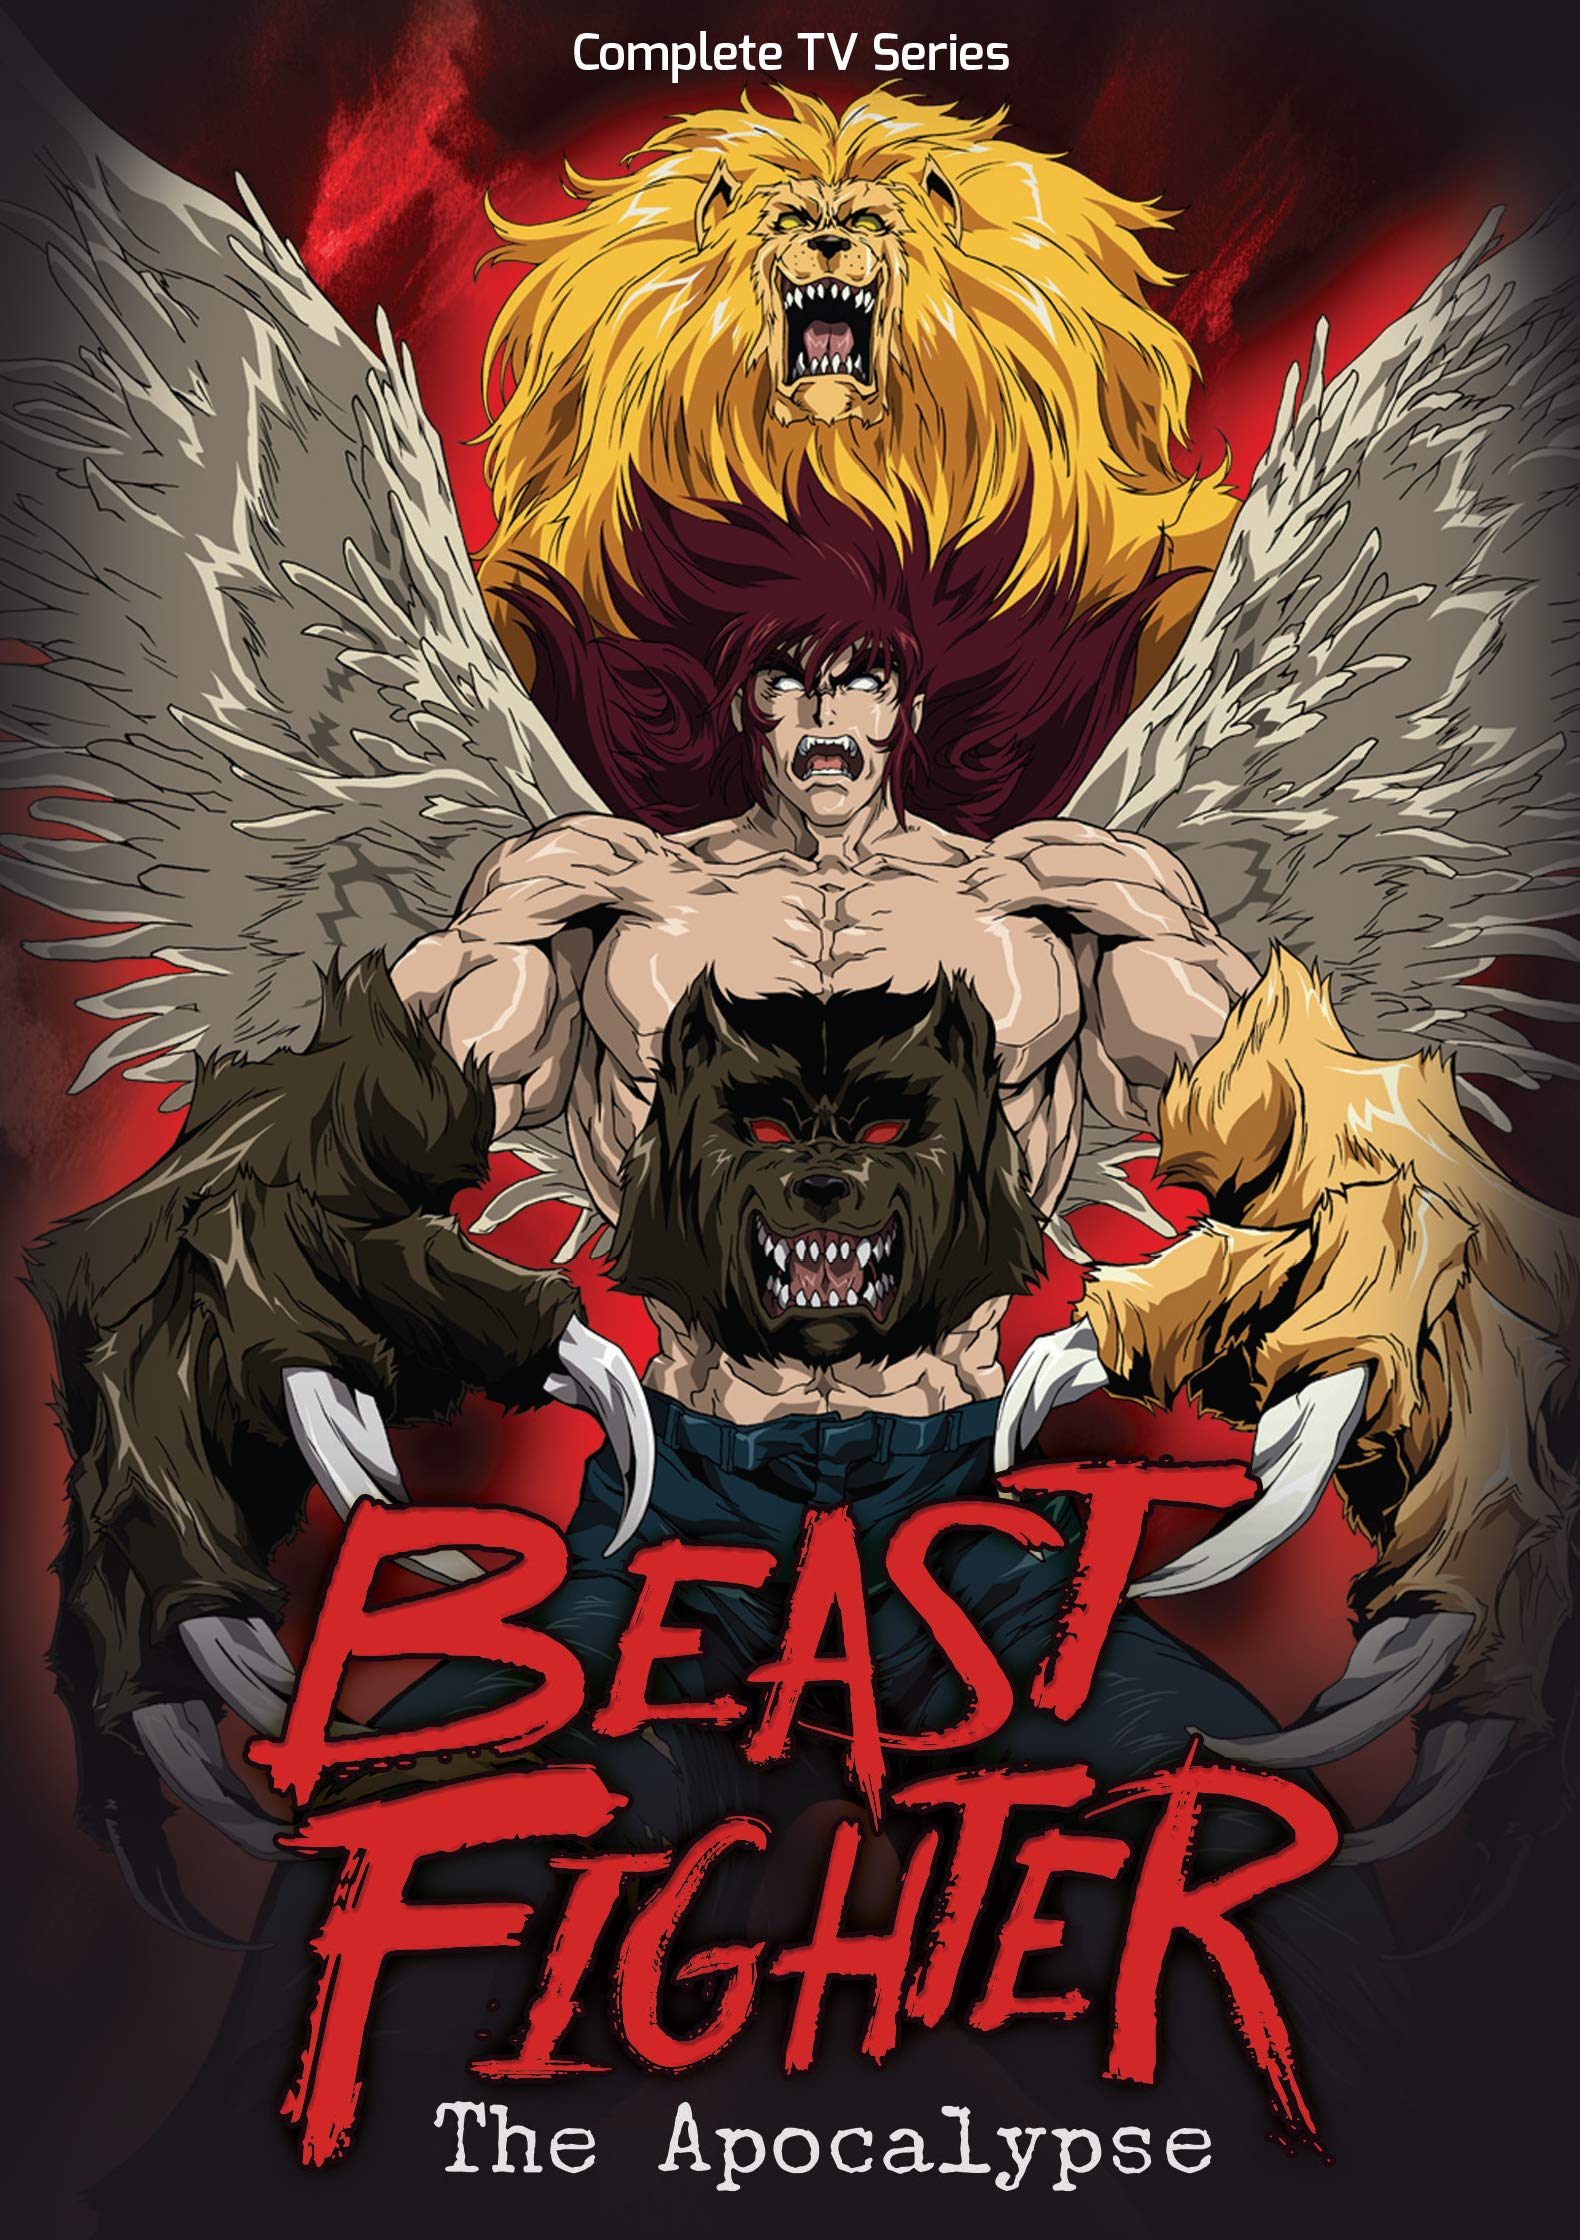 Beast Fighter: The Apocalypse Complete TV Series (Beast Fighter: The Apocalypse Complete TV Series) by Discotech Media